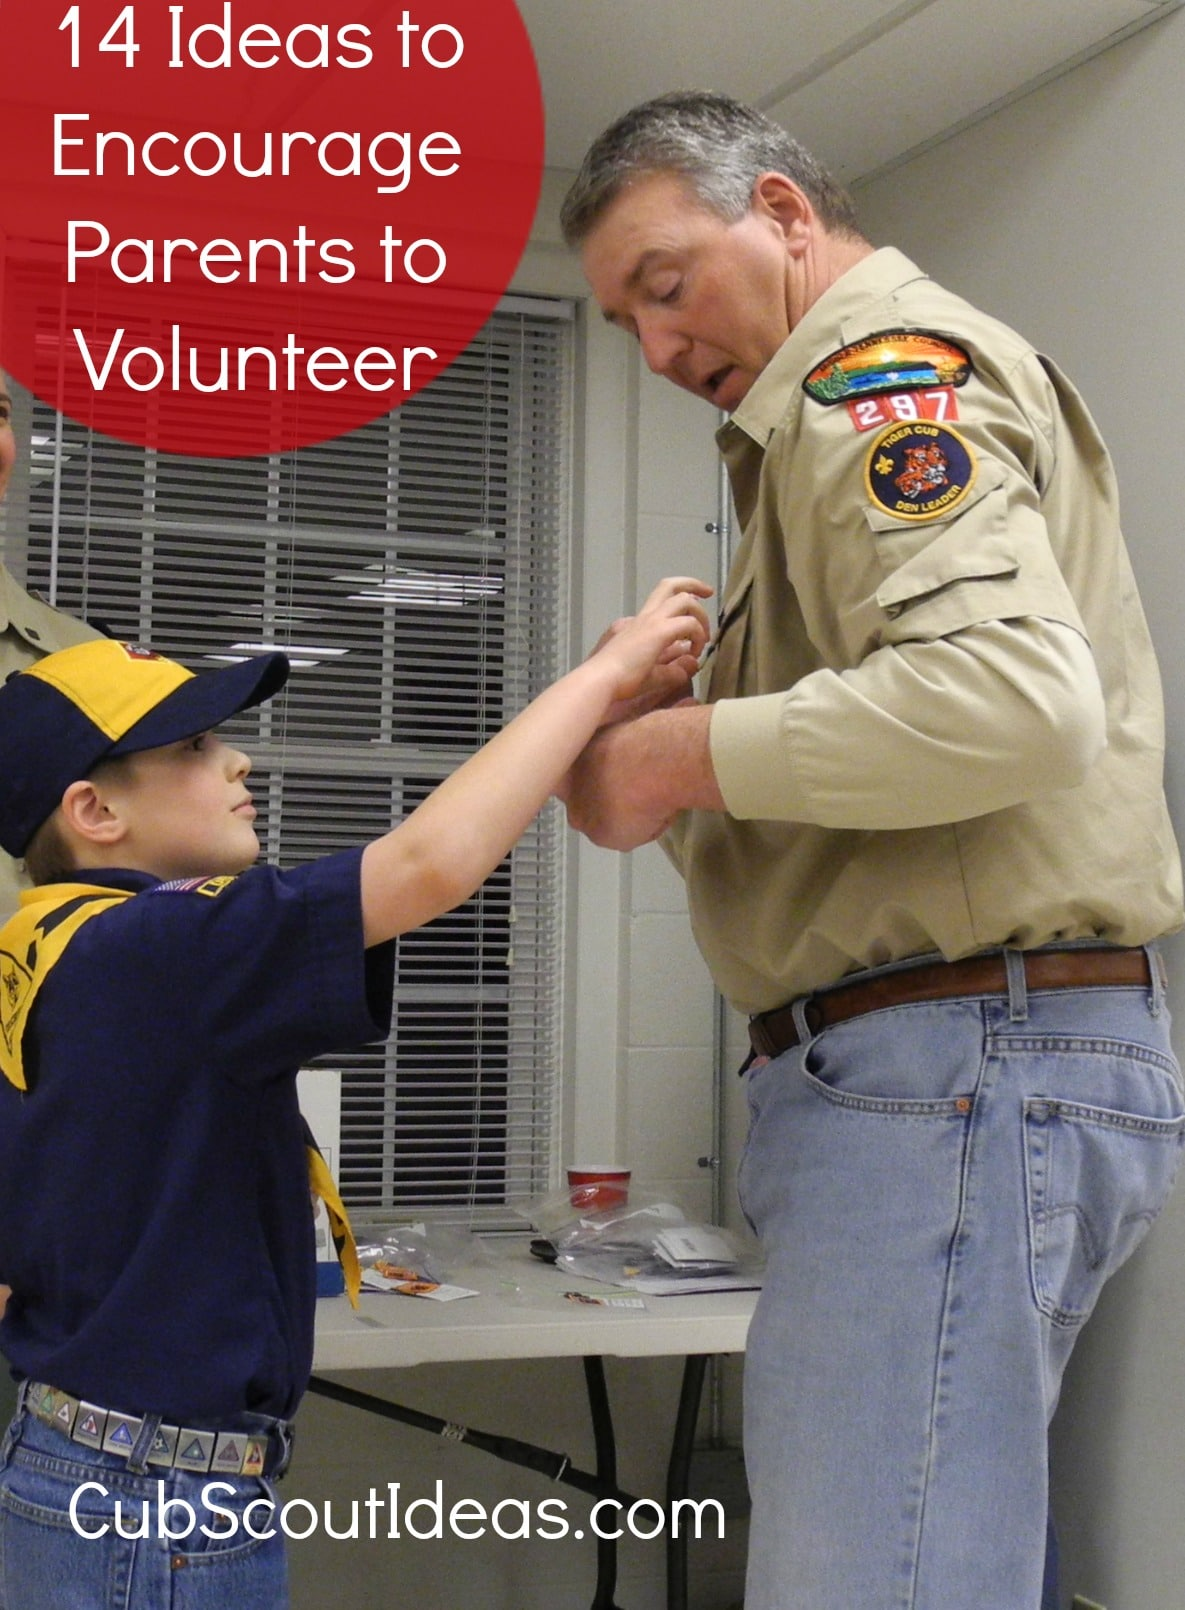 Encouraging parents to volunteer